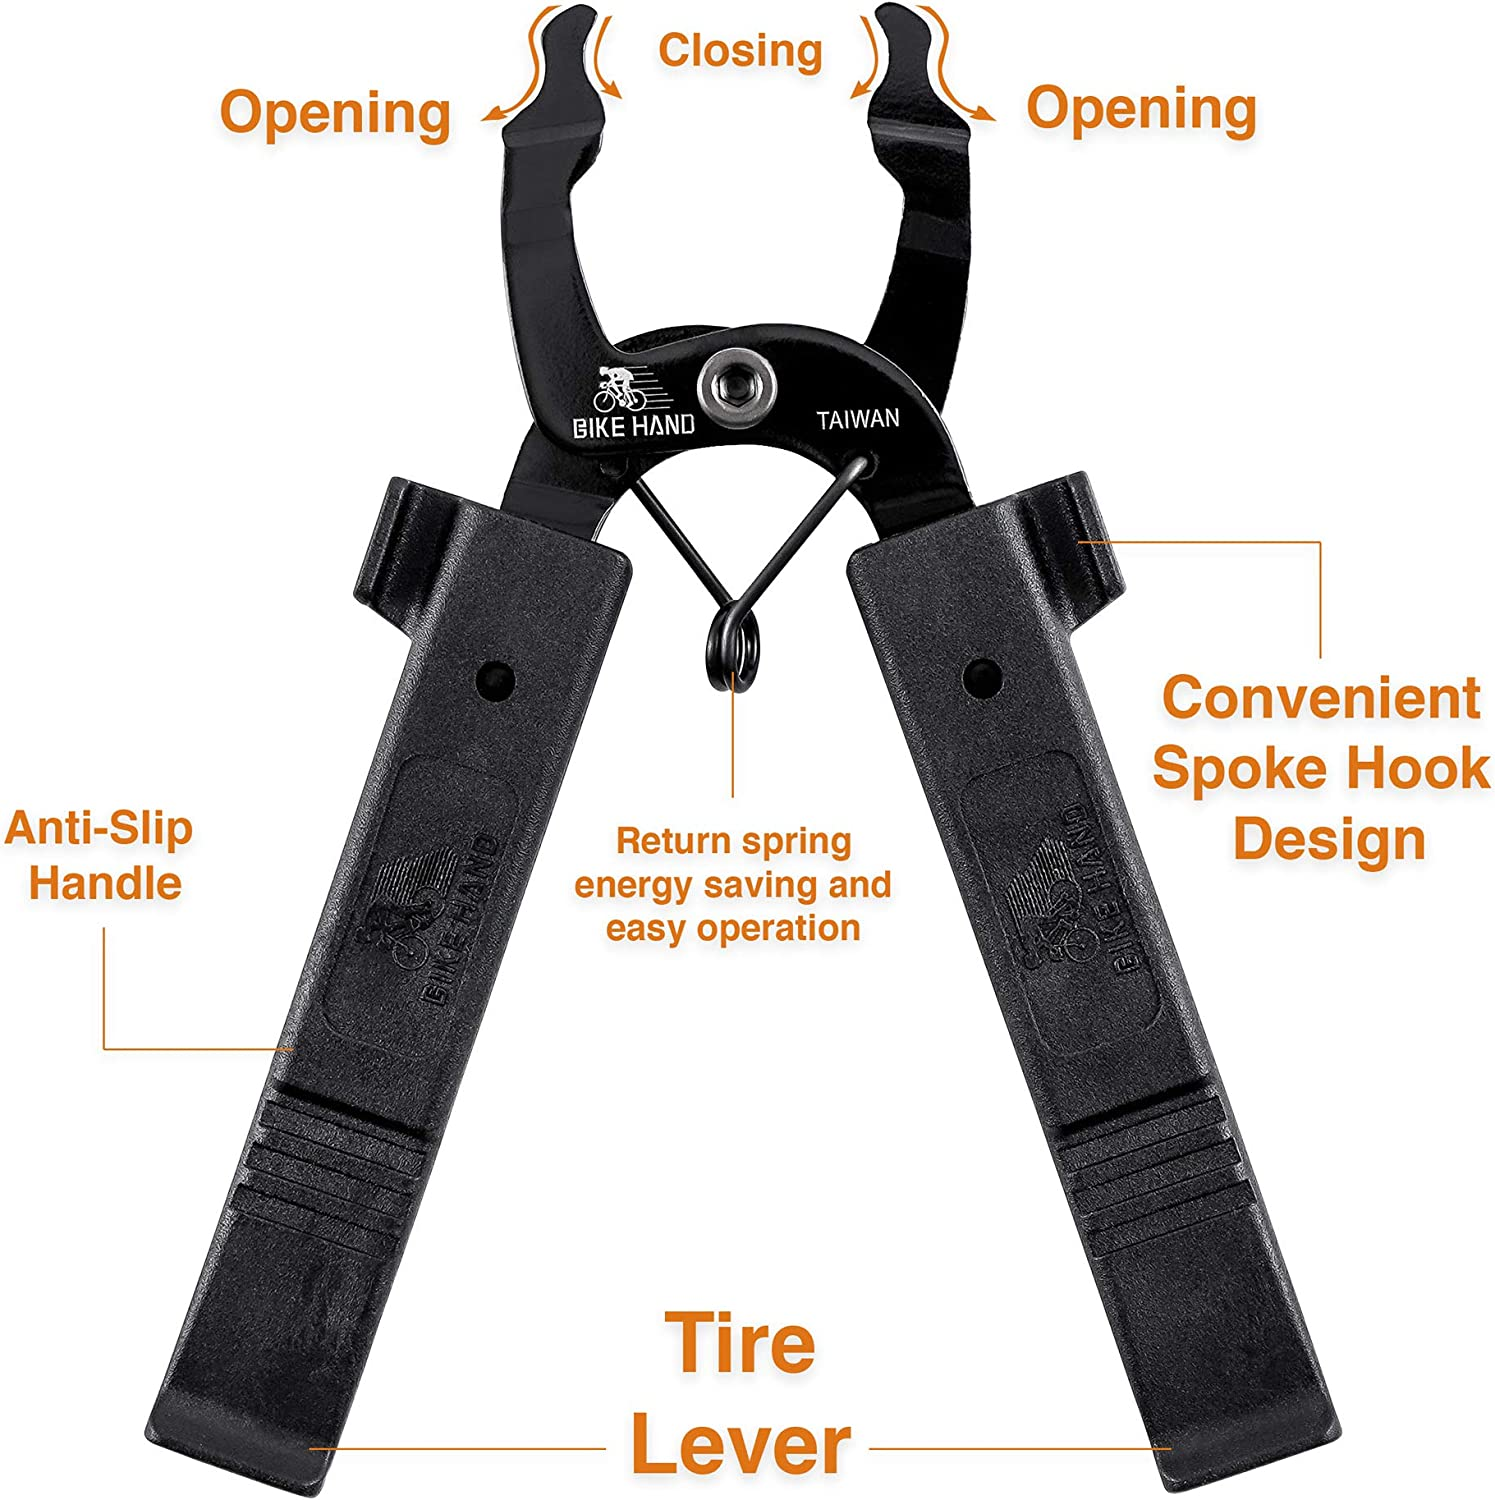 Bike Hand YC-335CO Bike Missing Link Remover Connector Tool